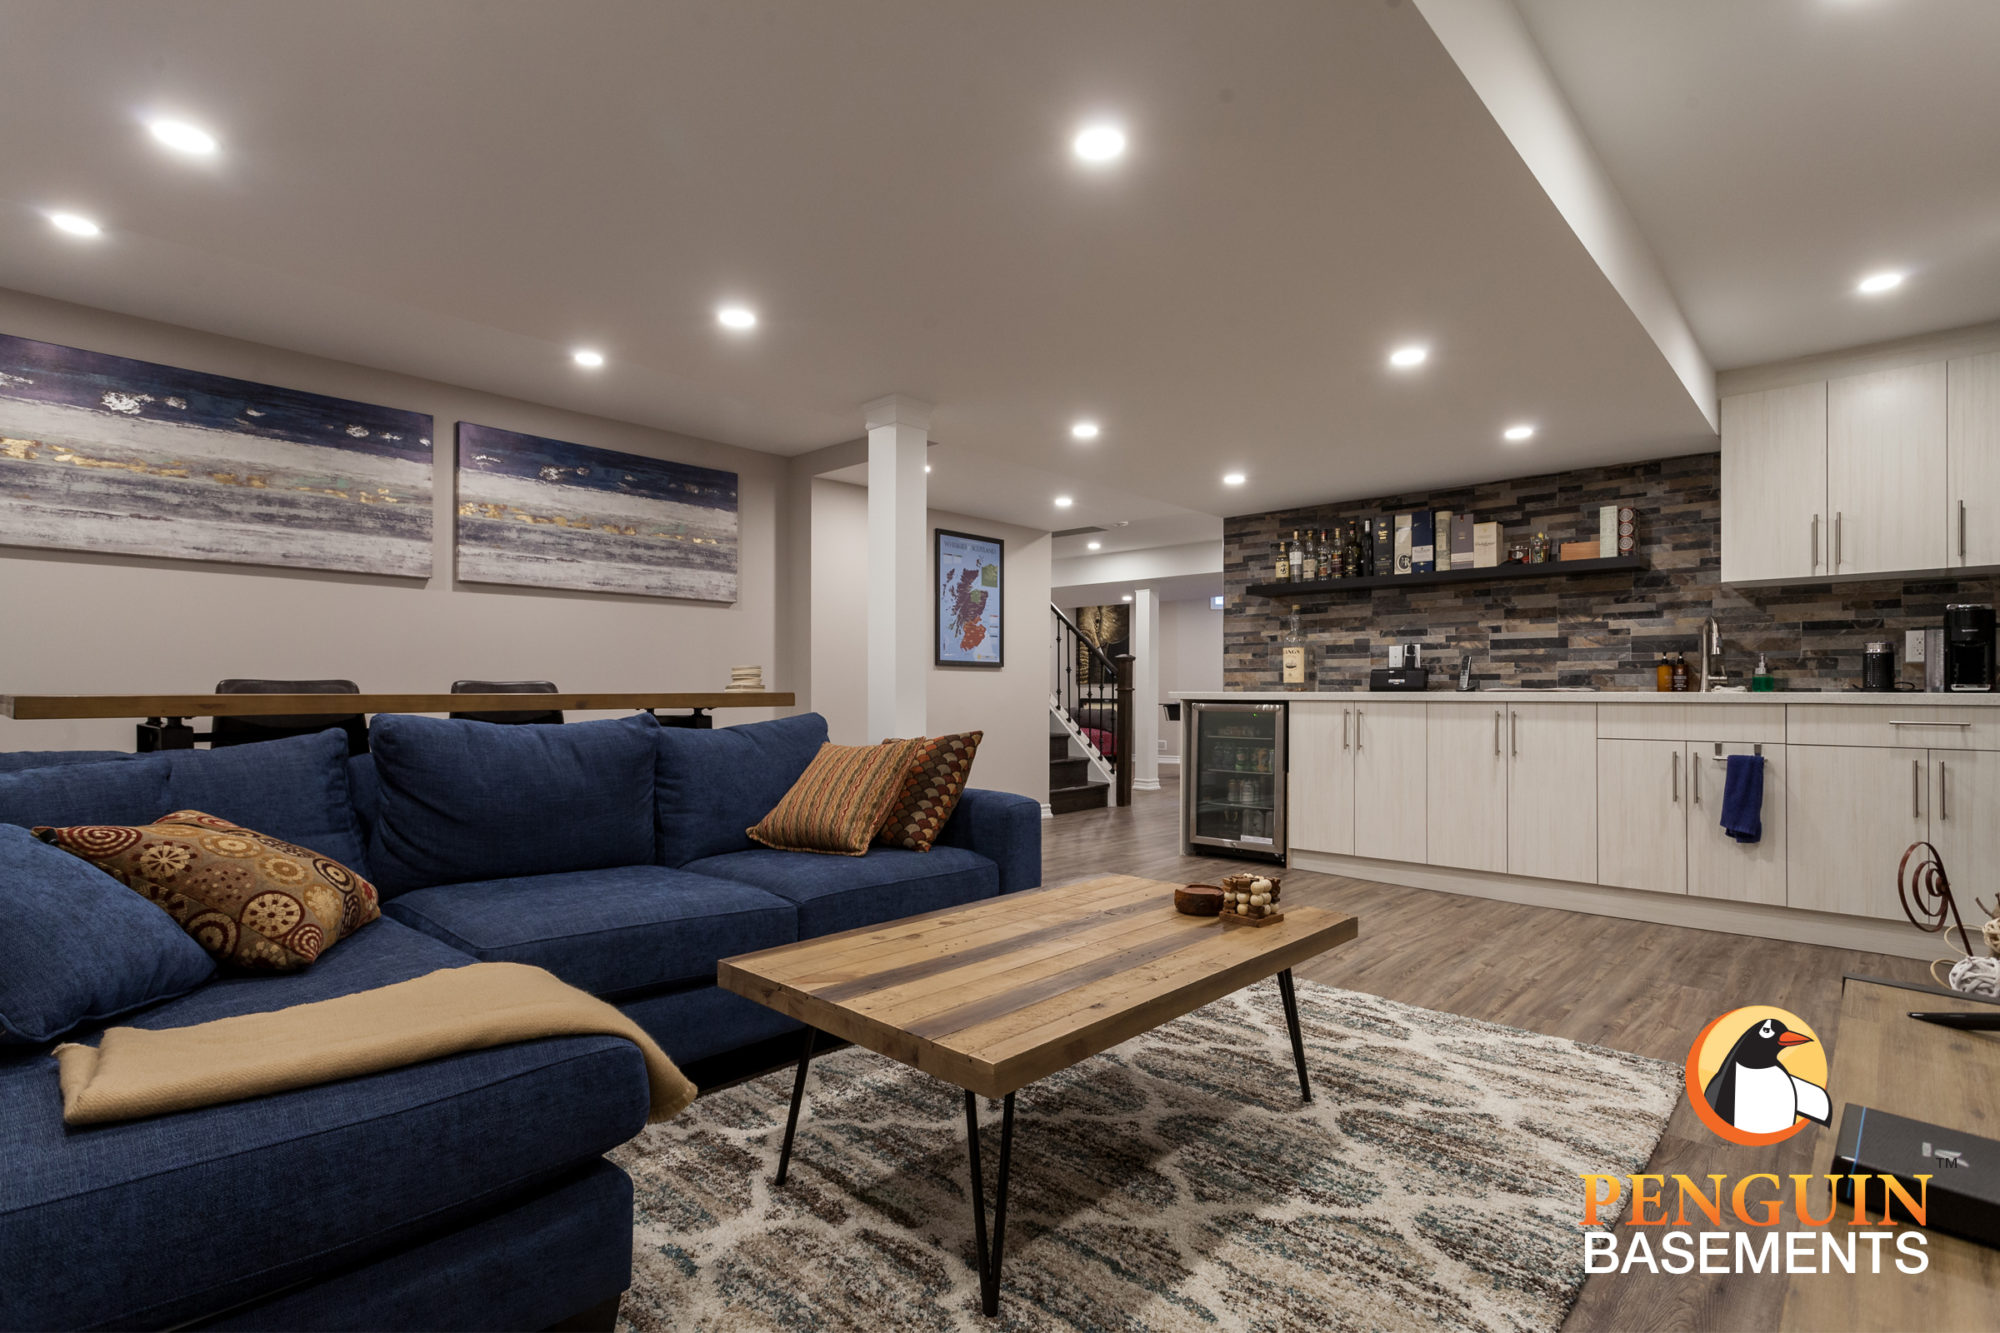 Basement Renovations, Services In Toronto, Mississauga